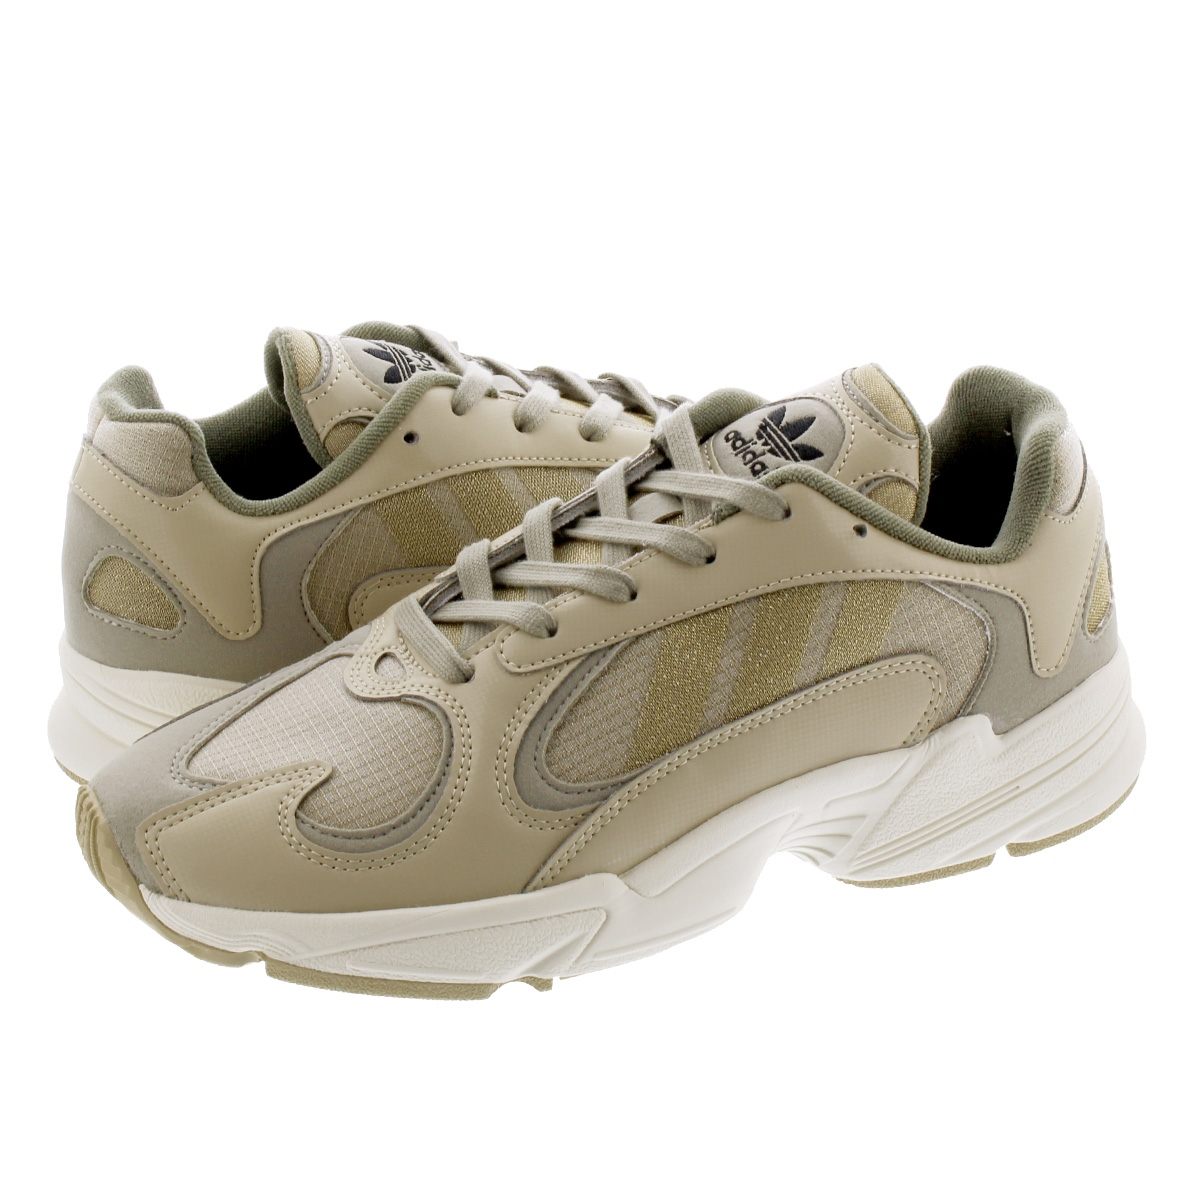 adidas YUNG-1 アディダス ヤング 1 SABANNA/GOLD METALLIC/FEATHER GREY ef5335